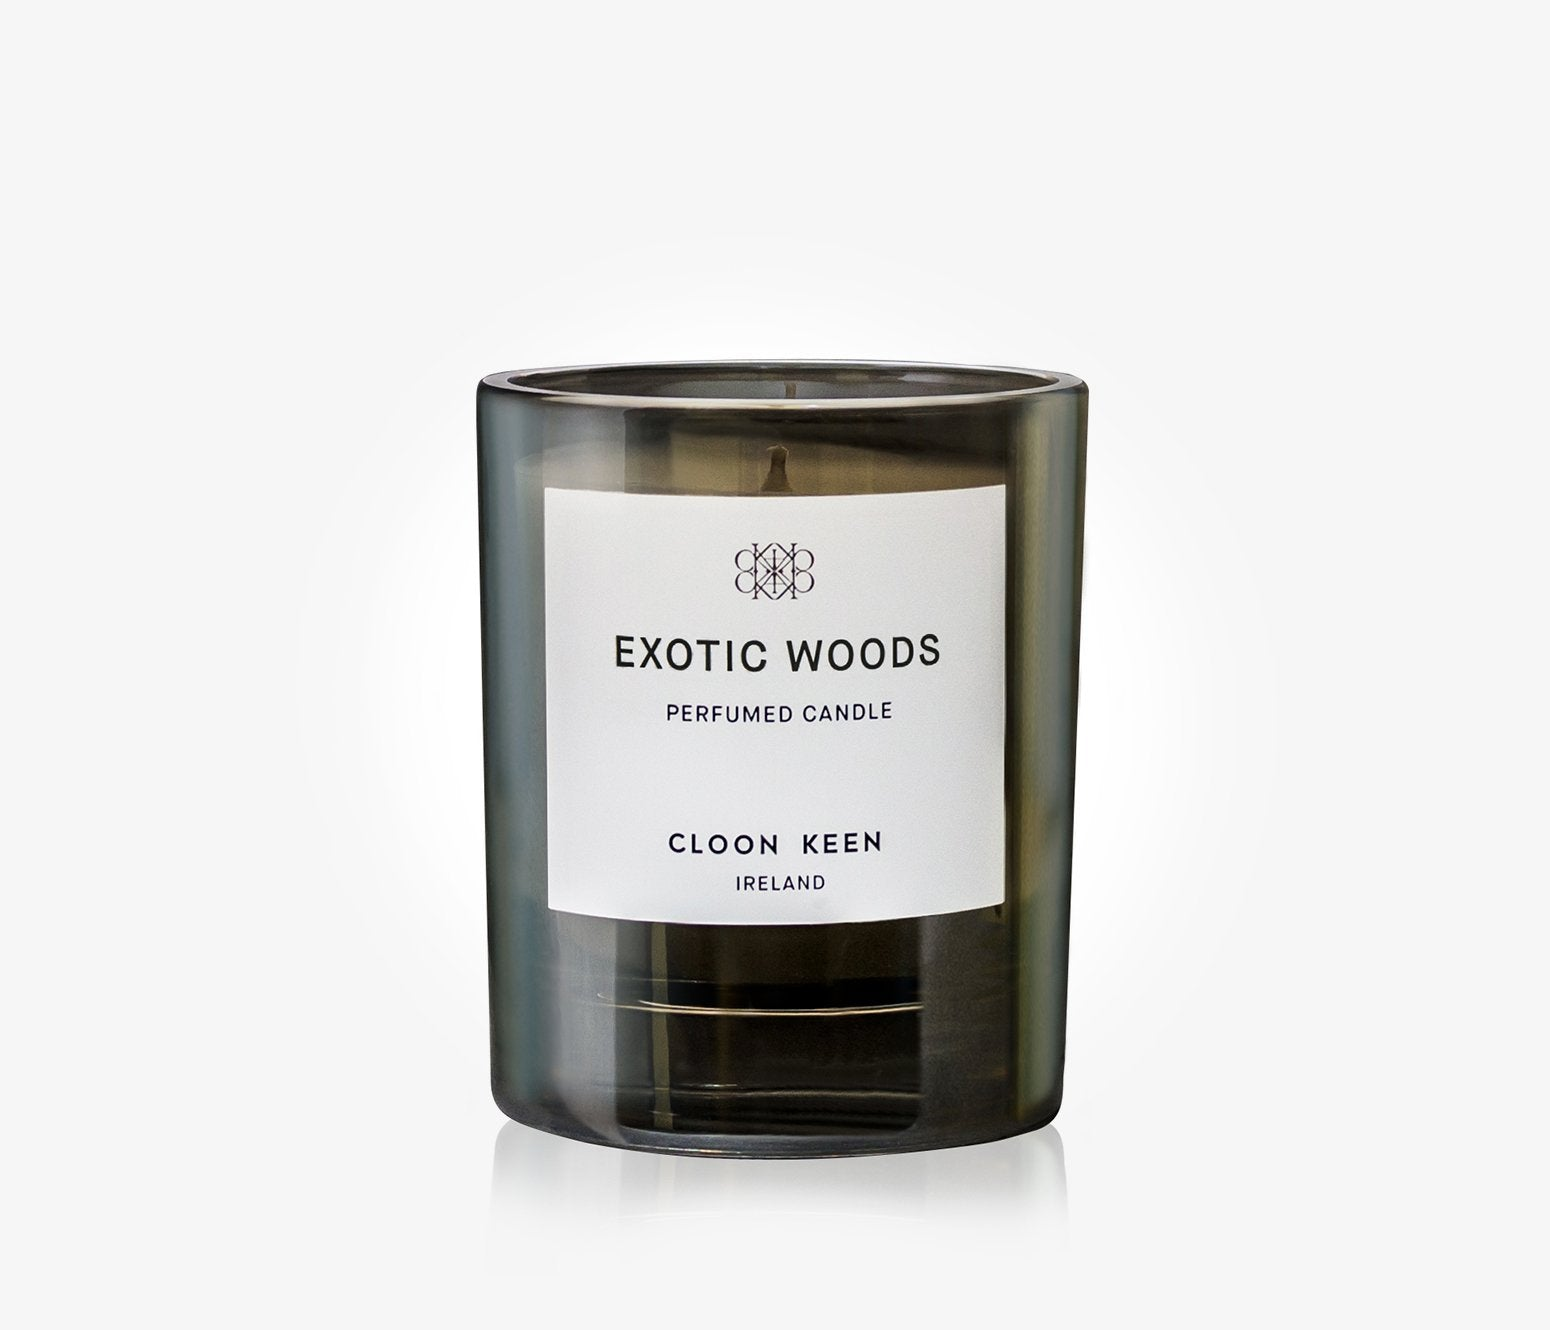 Cloon Keen - Exotic Woods Candle - 280g - BYP3351 - Product Image - Candle - Les Senteurs